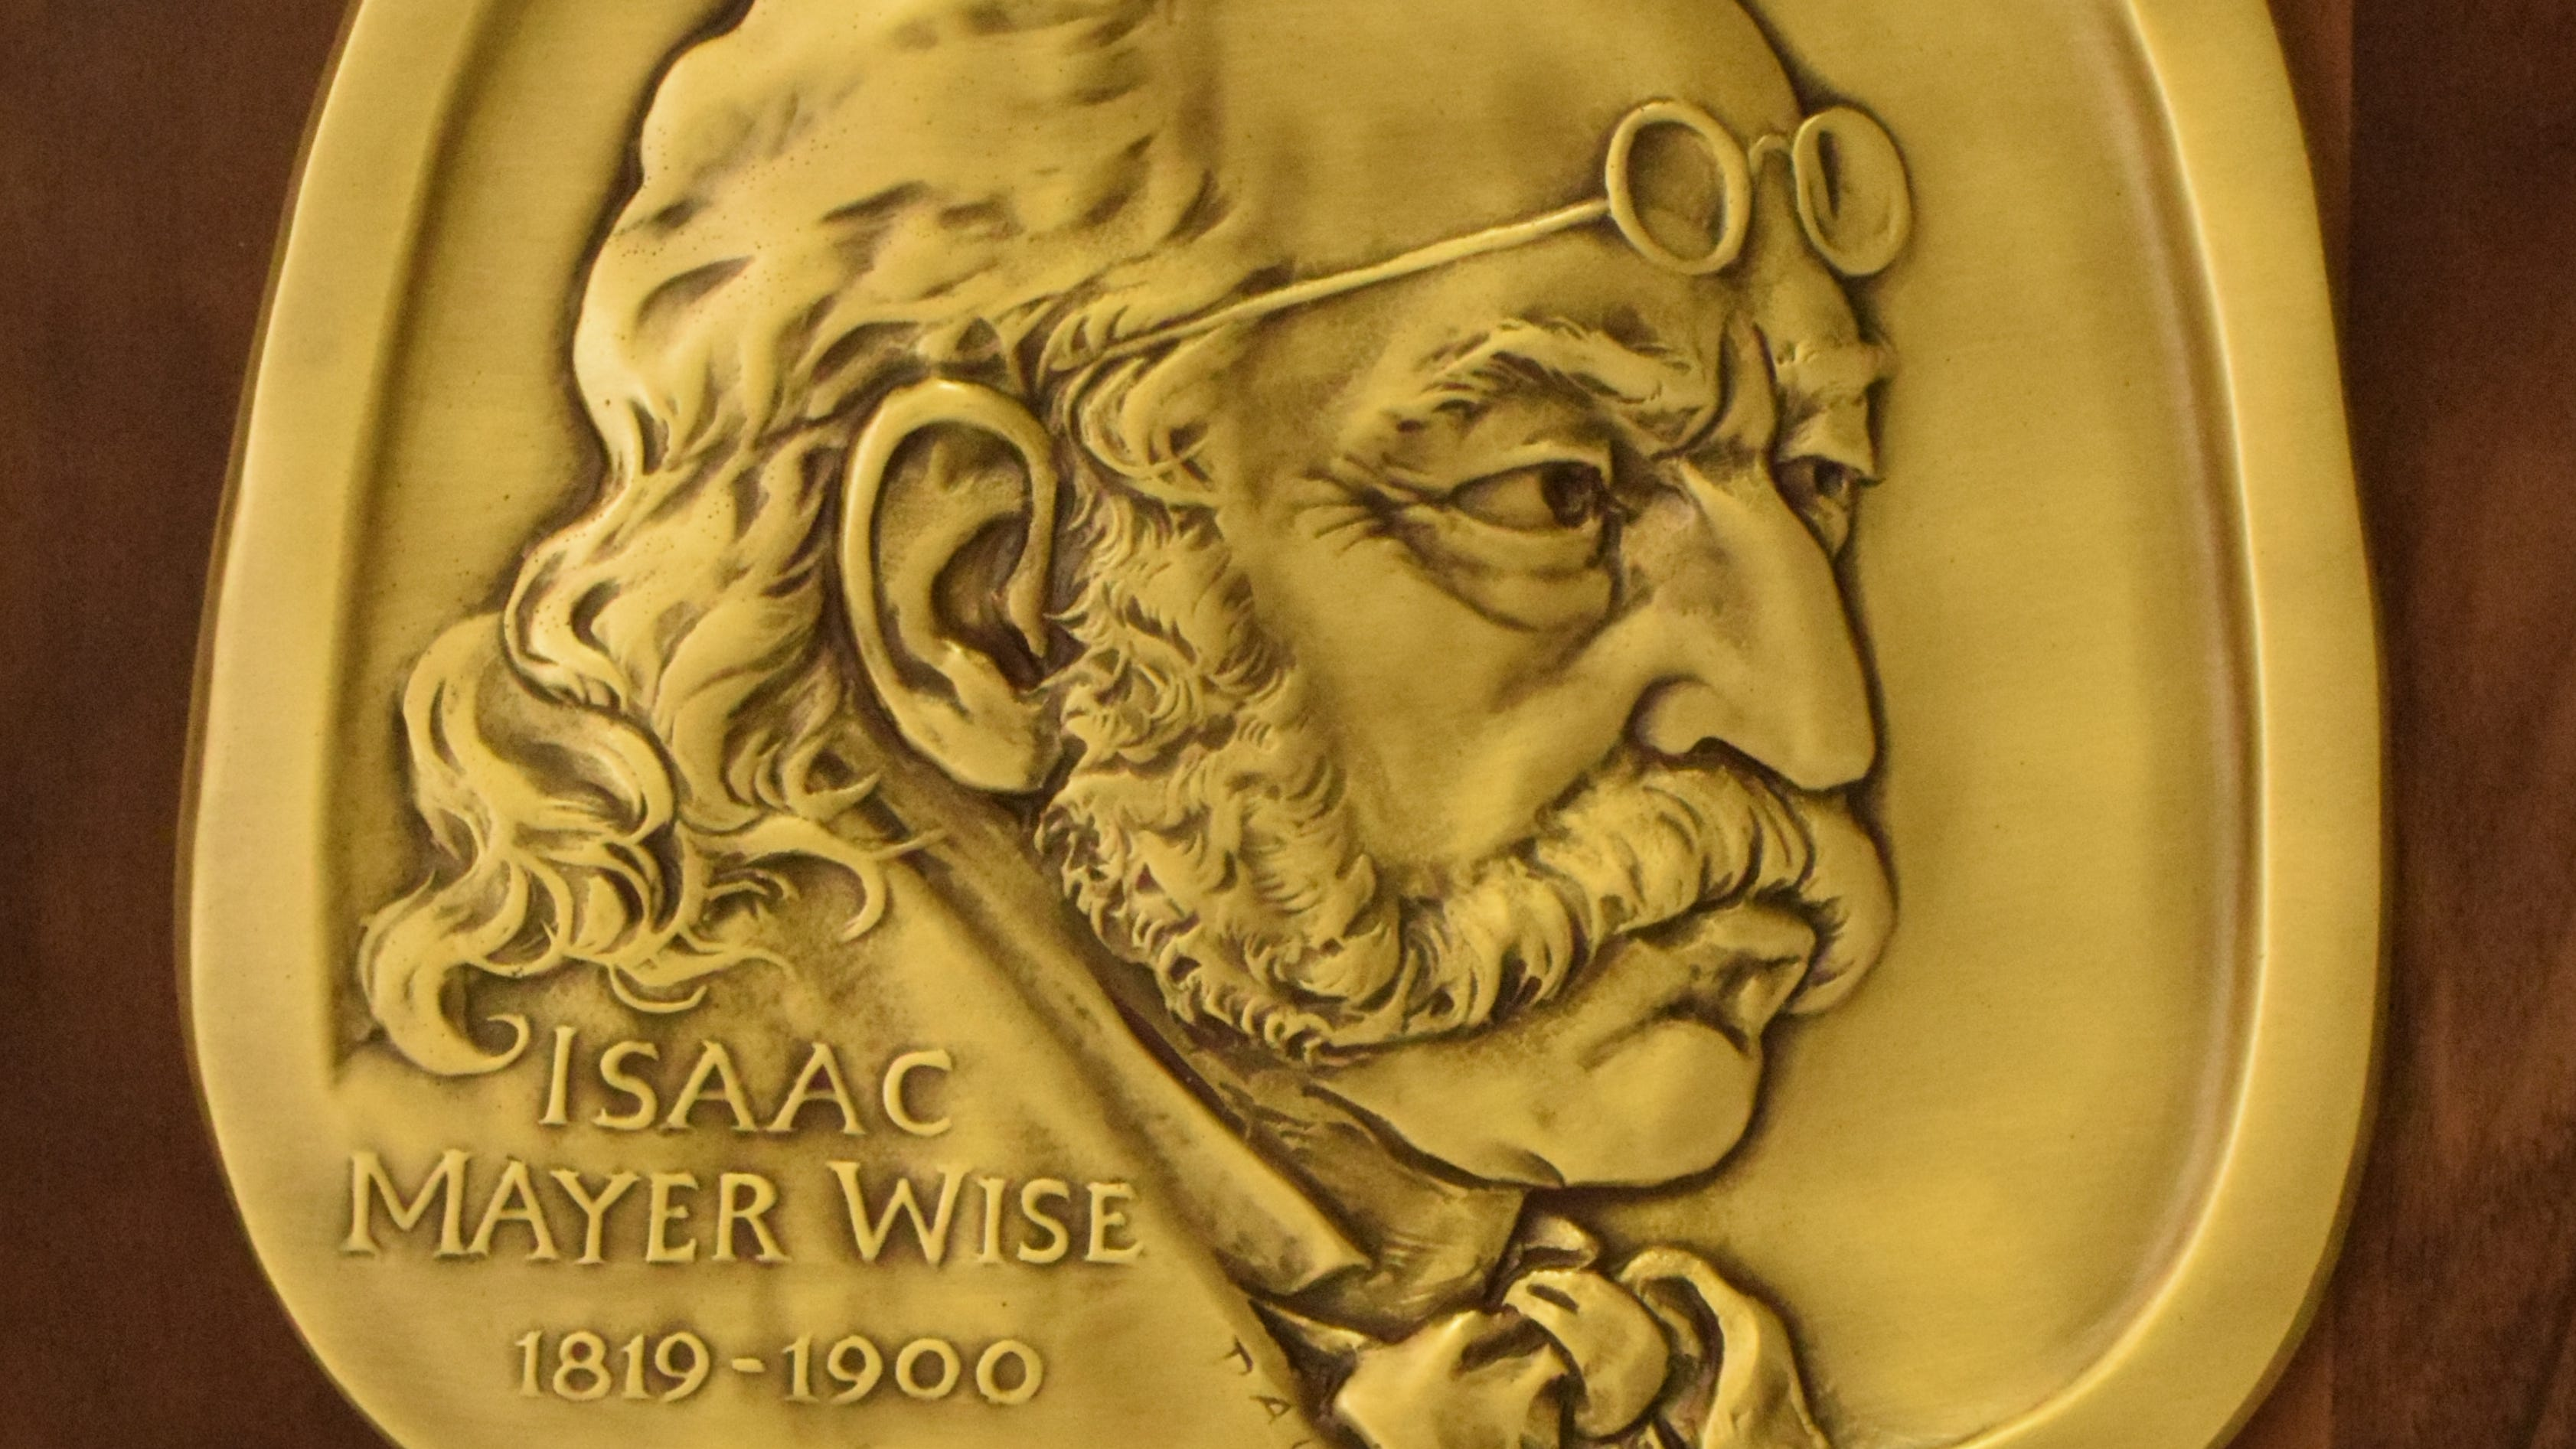 Isaac Mayer Wise (1819 to 1900), leader of Reform Judaism, is the 2019 inductee to the Jewish-American Hall of Fame. The medal was designed by Eugene Daub.